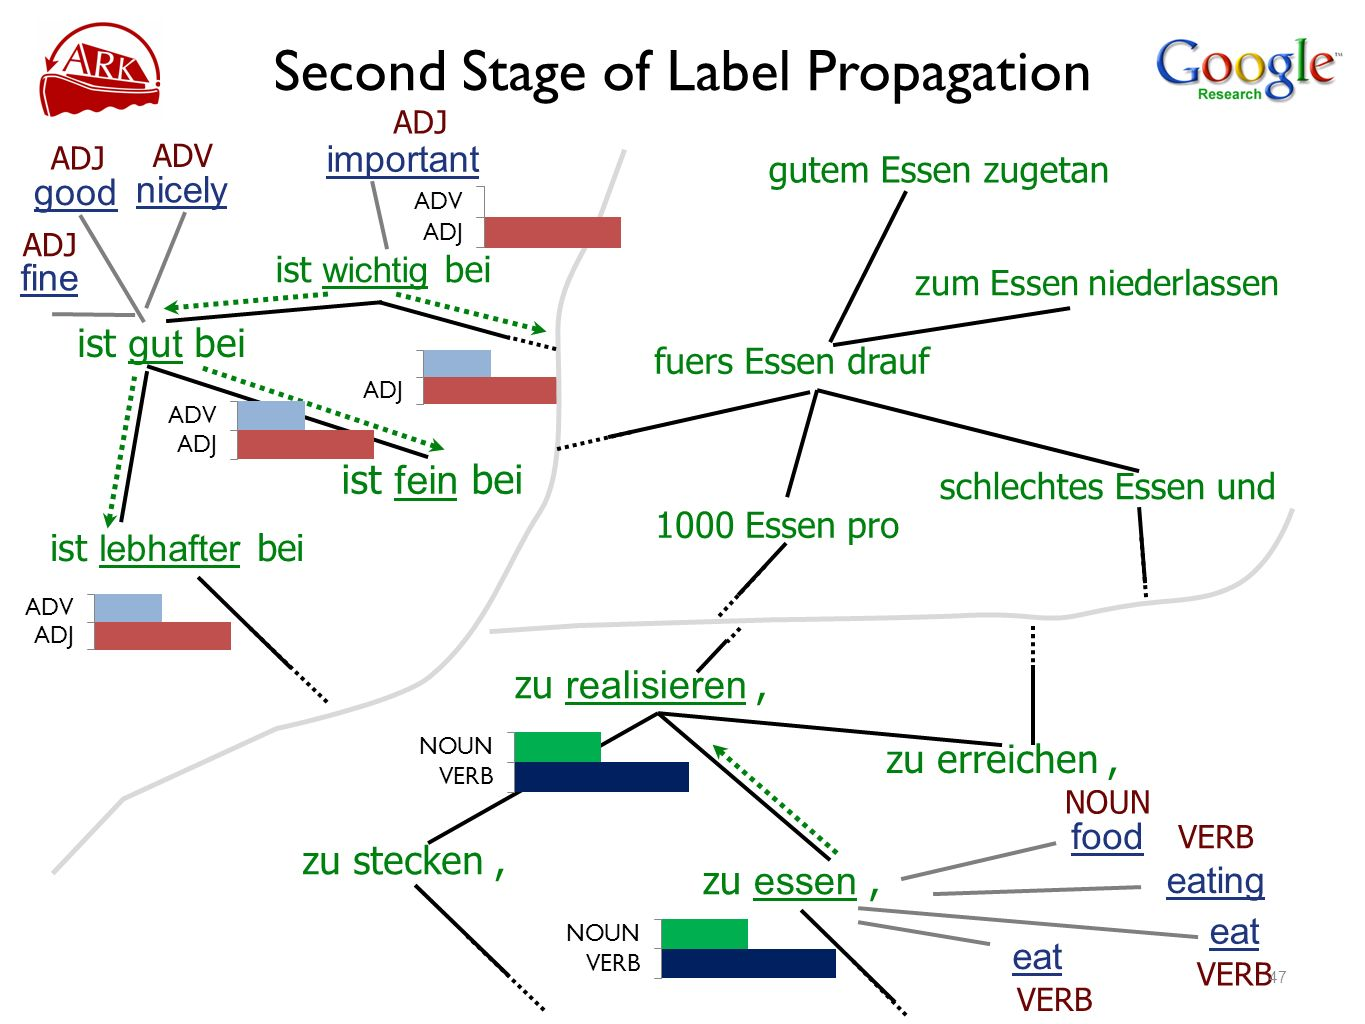 Second Stage of Label Propagation